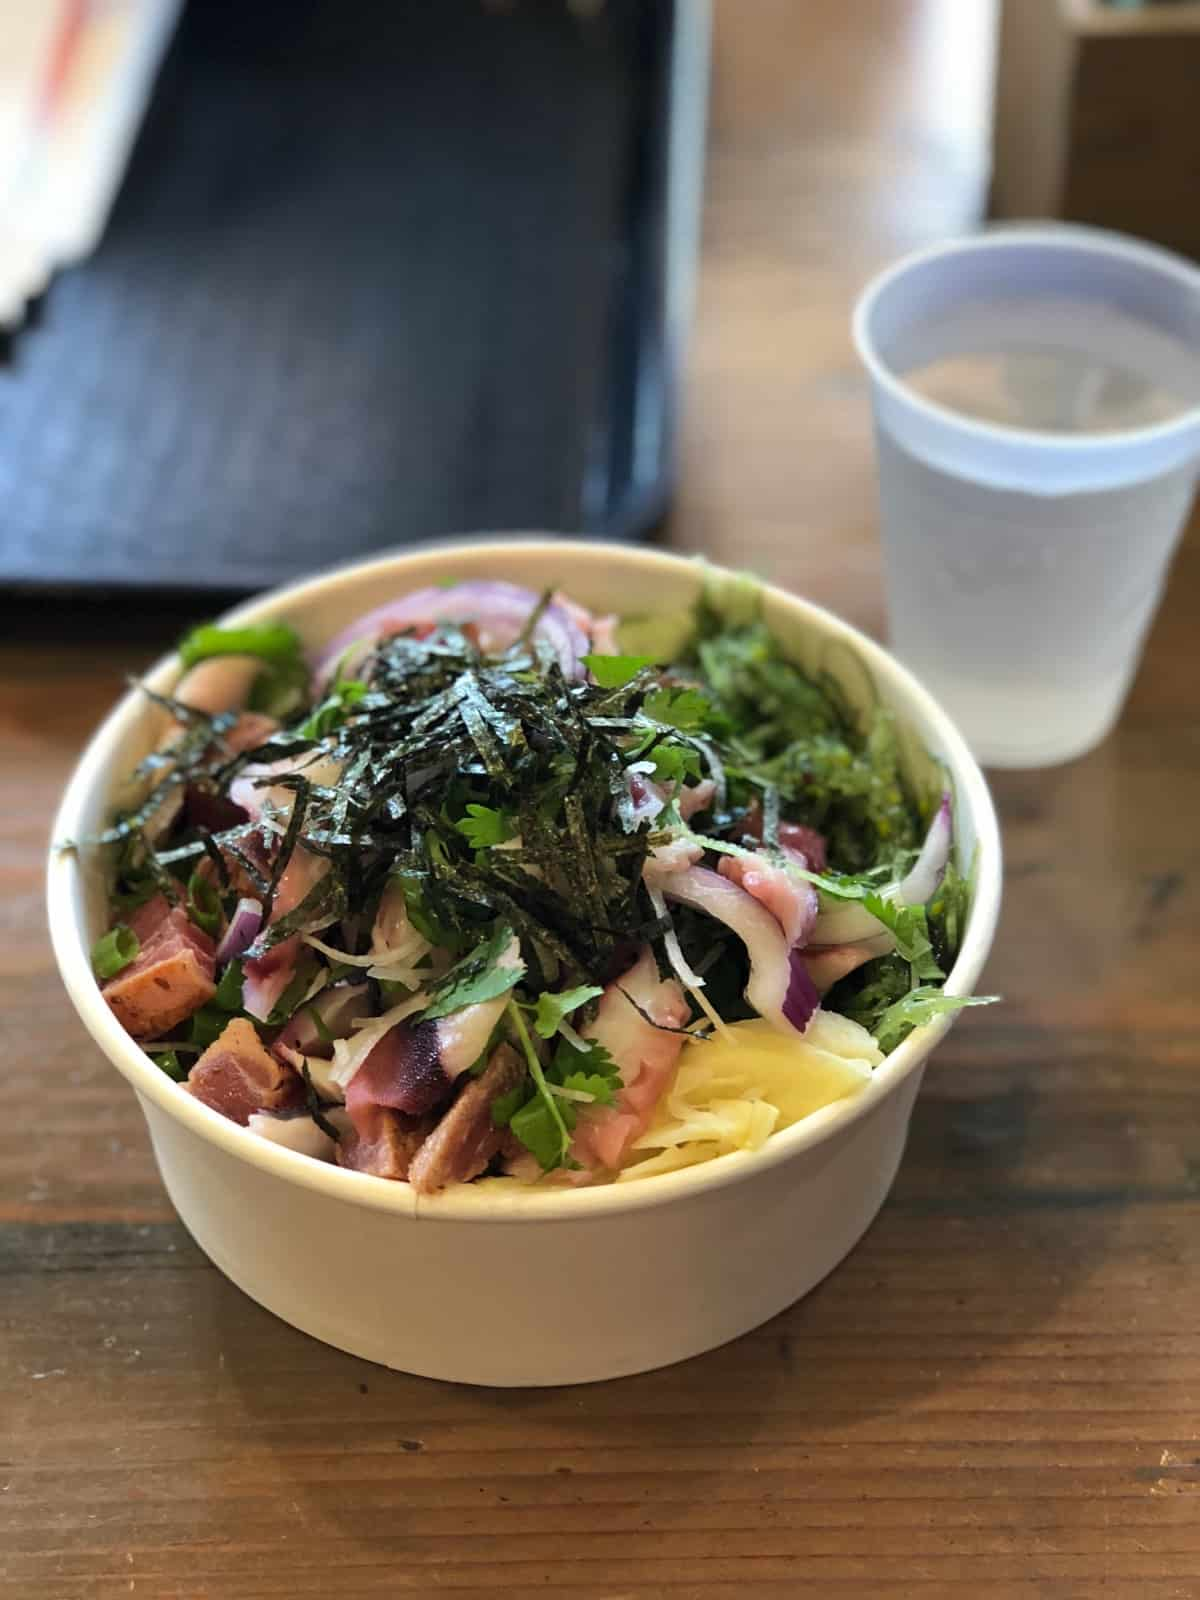 Poke bowl with tuna and octopus, seaweed salad, and ginger from Poke Chop in San Diego, CA